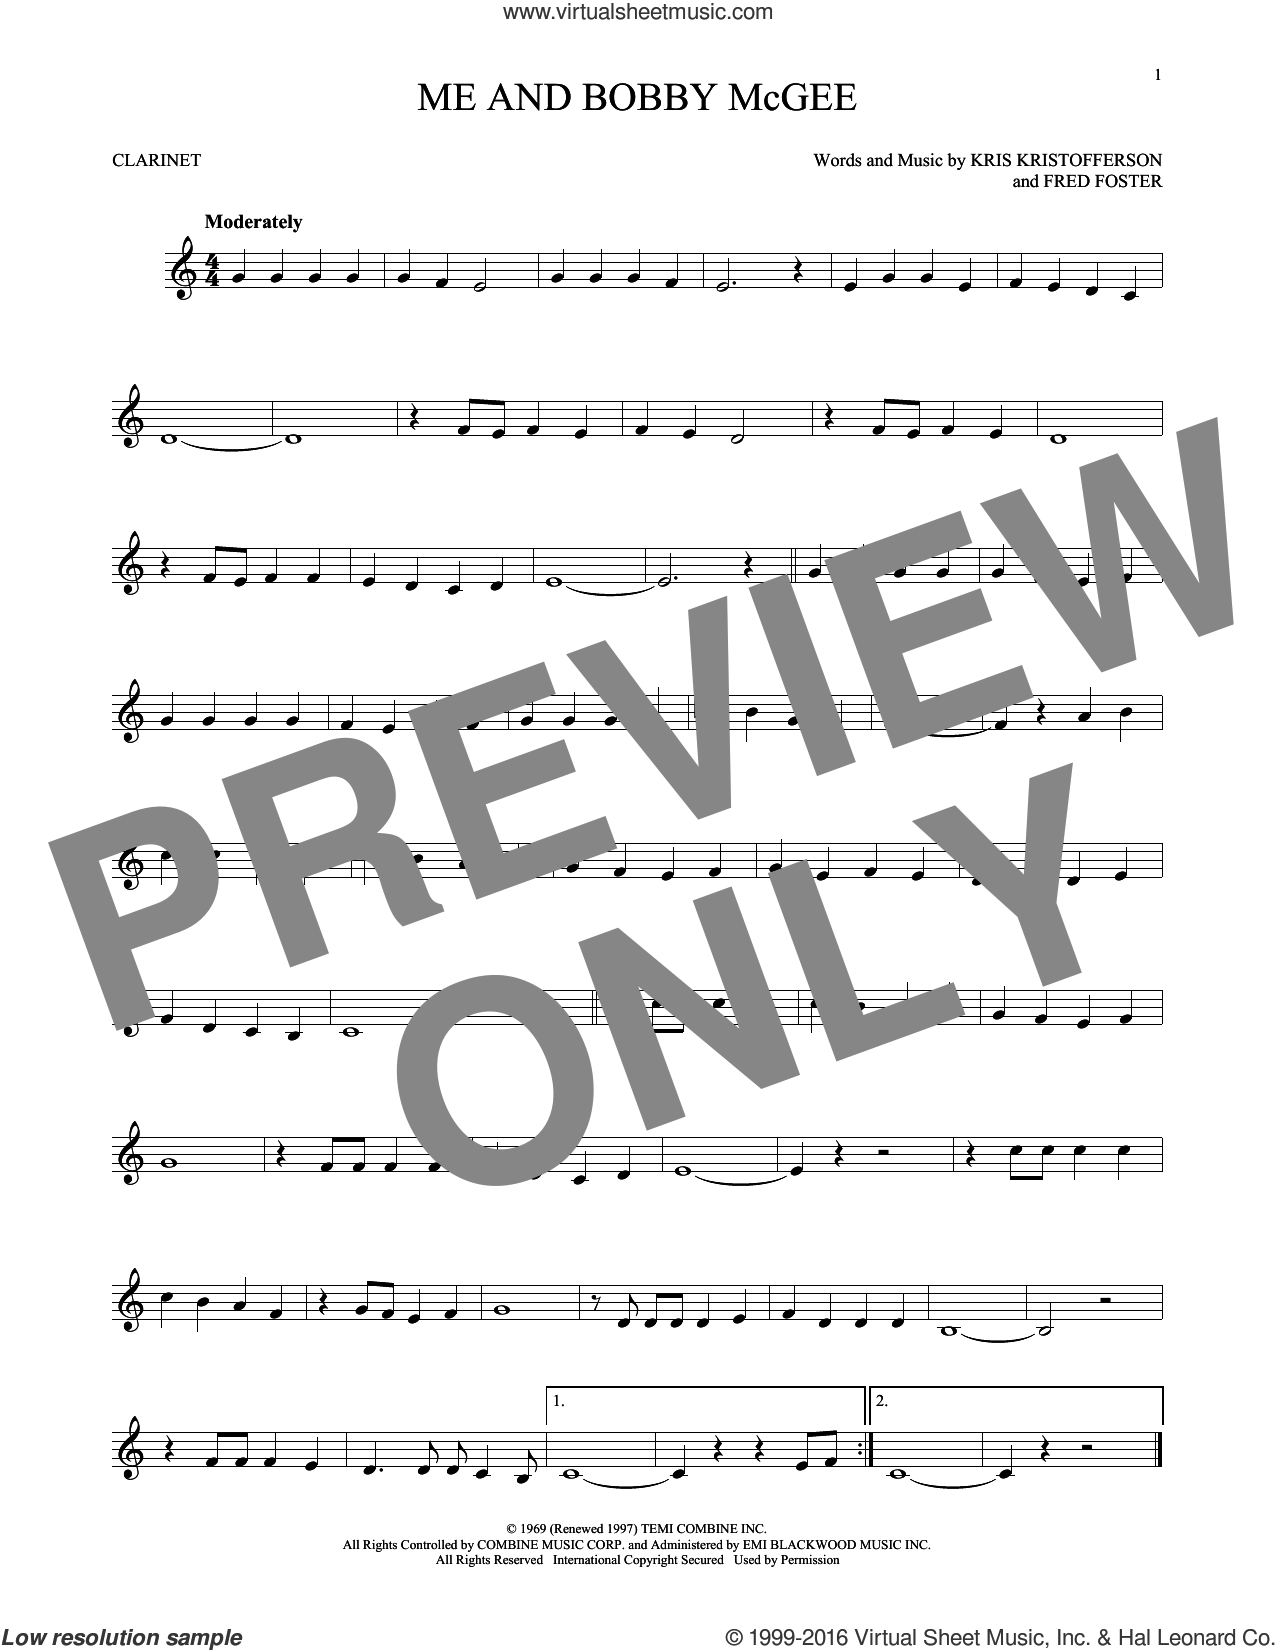 Me And Bobby McGee sheet music for clarinet solo by Kris Kristofferson, Janis Joplin, Roger Miller and Fred Foster, intermediate skill level